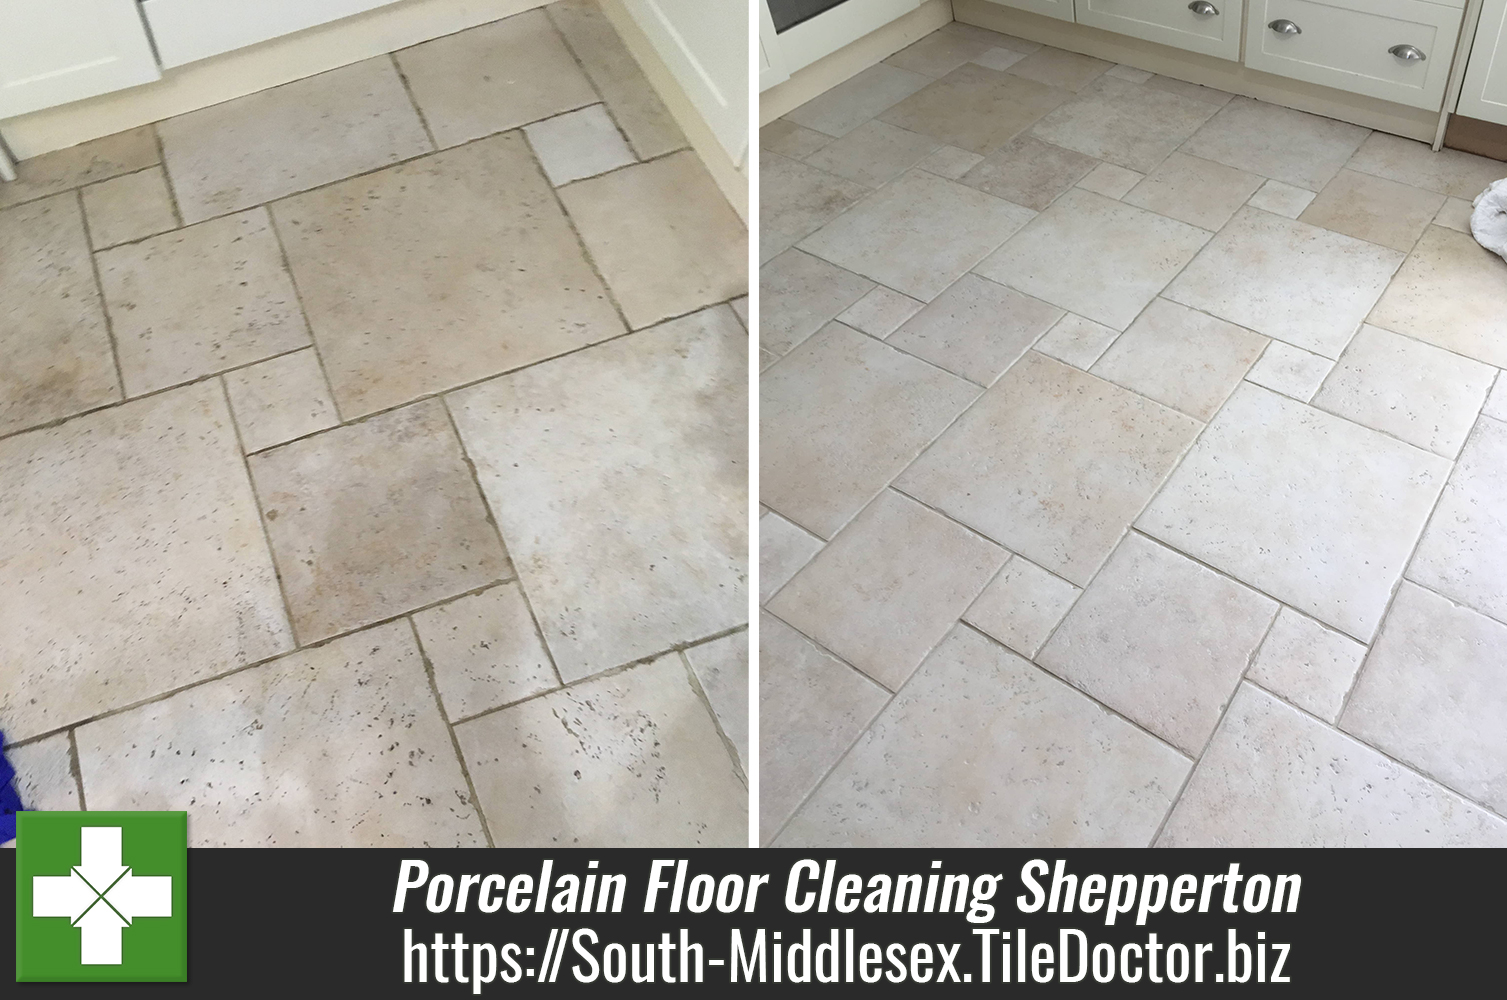 Porcelain-Tiled-Kitchen-Floor-Before-After-Cleaning-Shepperton